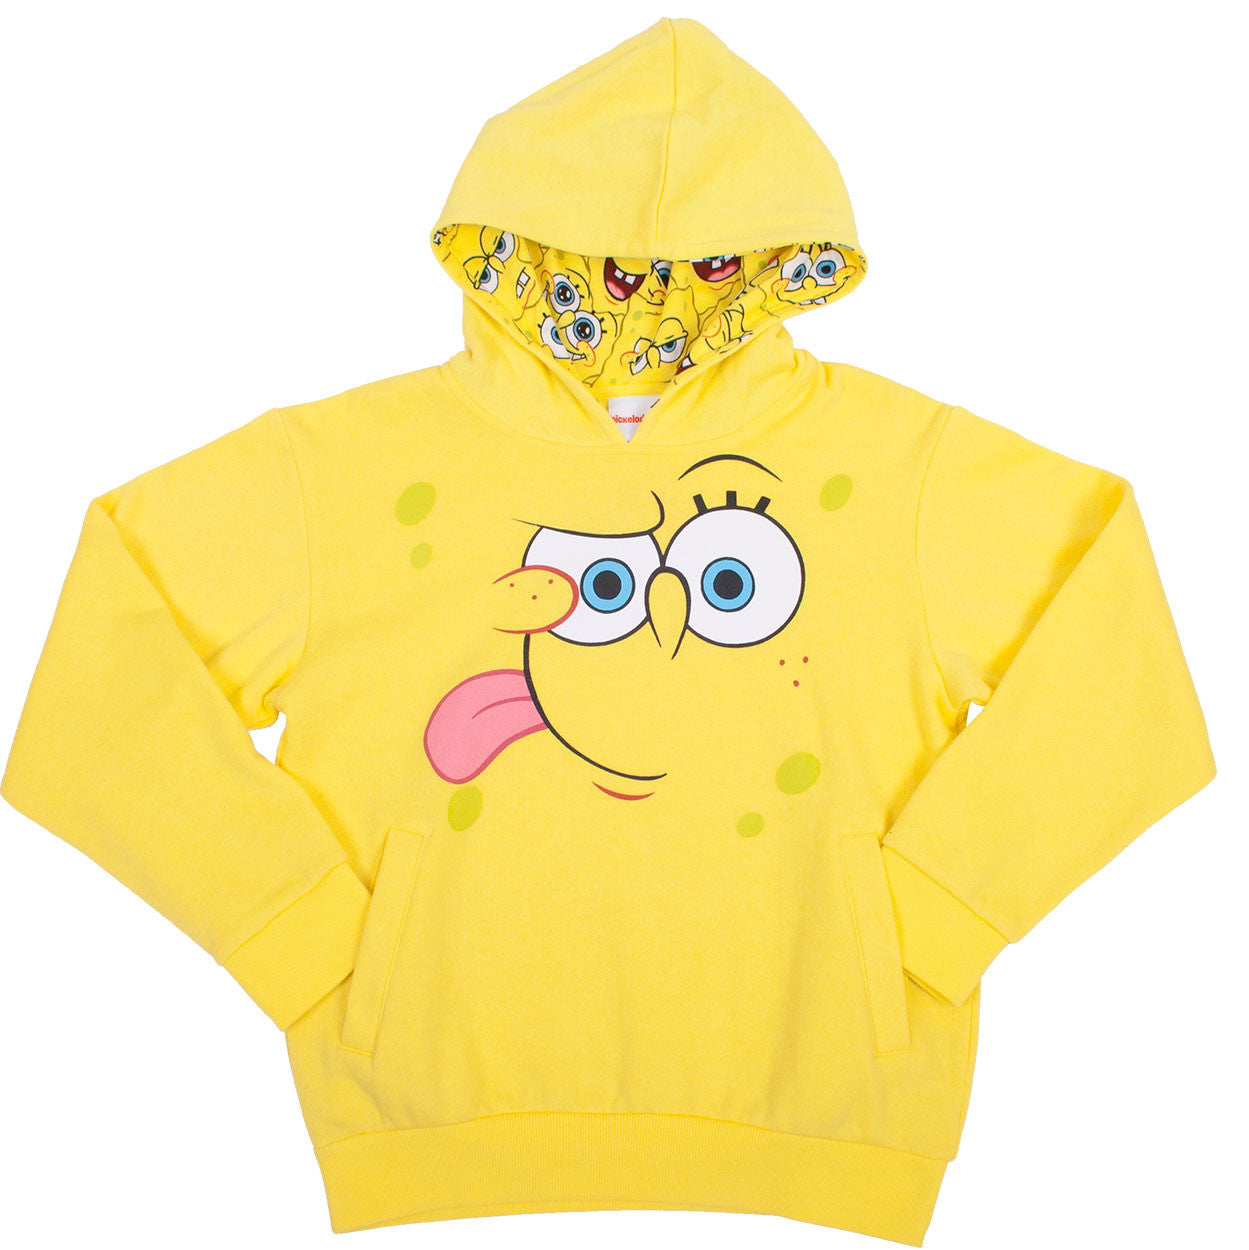 SpongeBob SquarePants Big Face Pullover